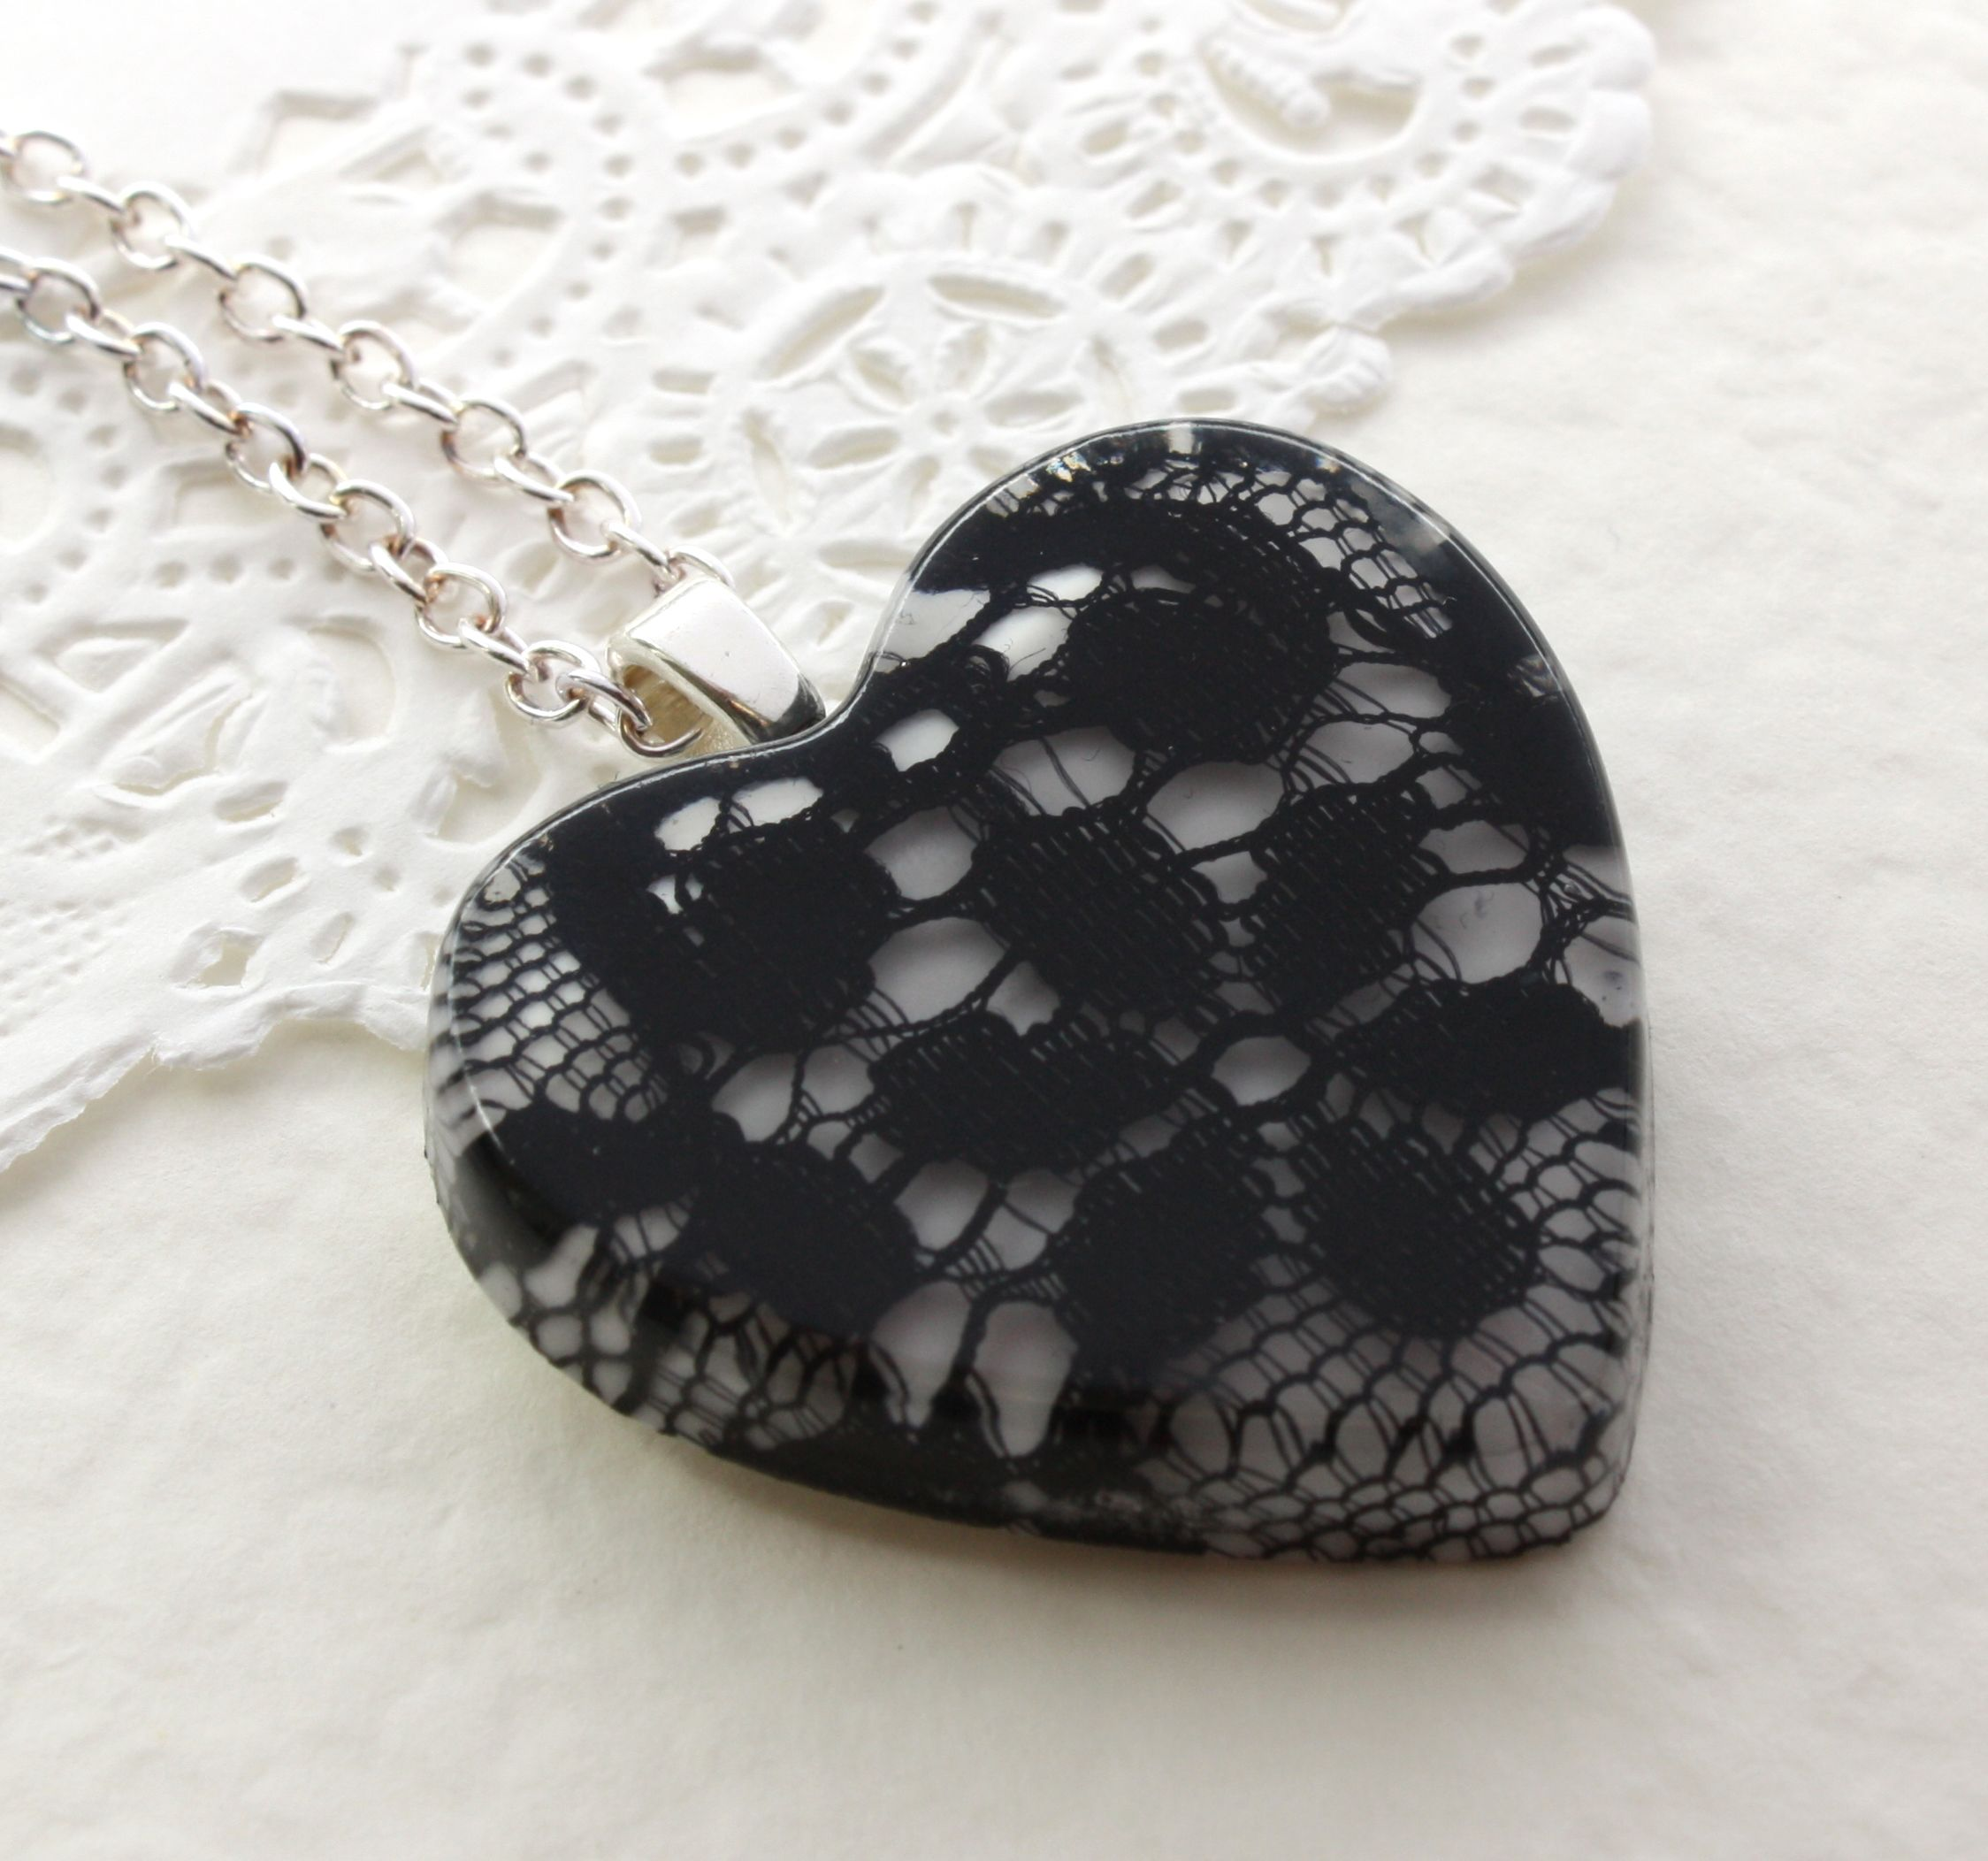 Black lace embedded in resin